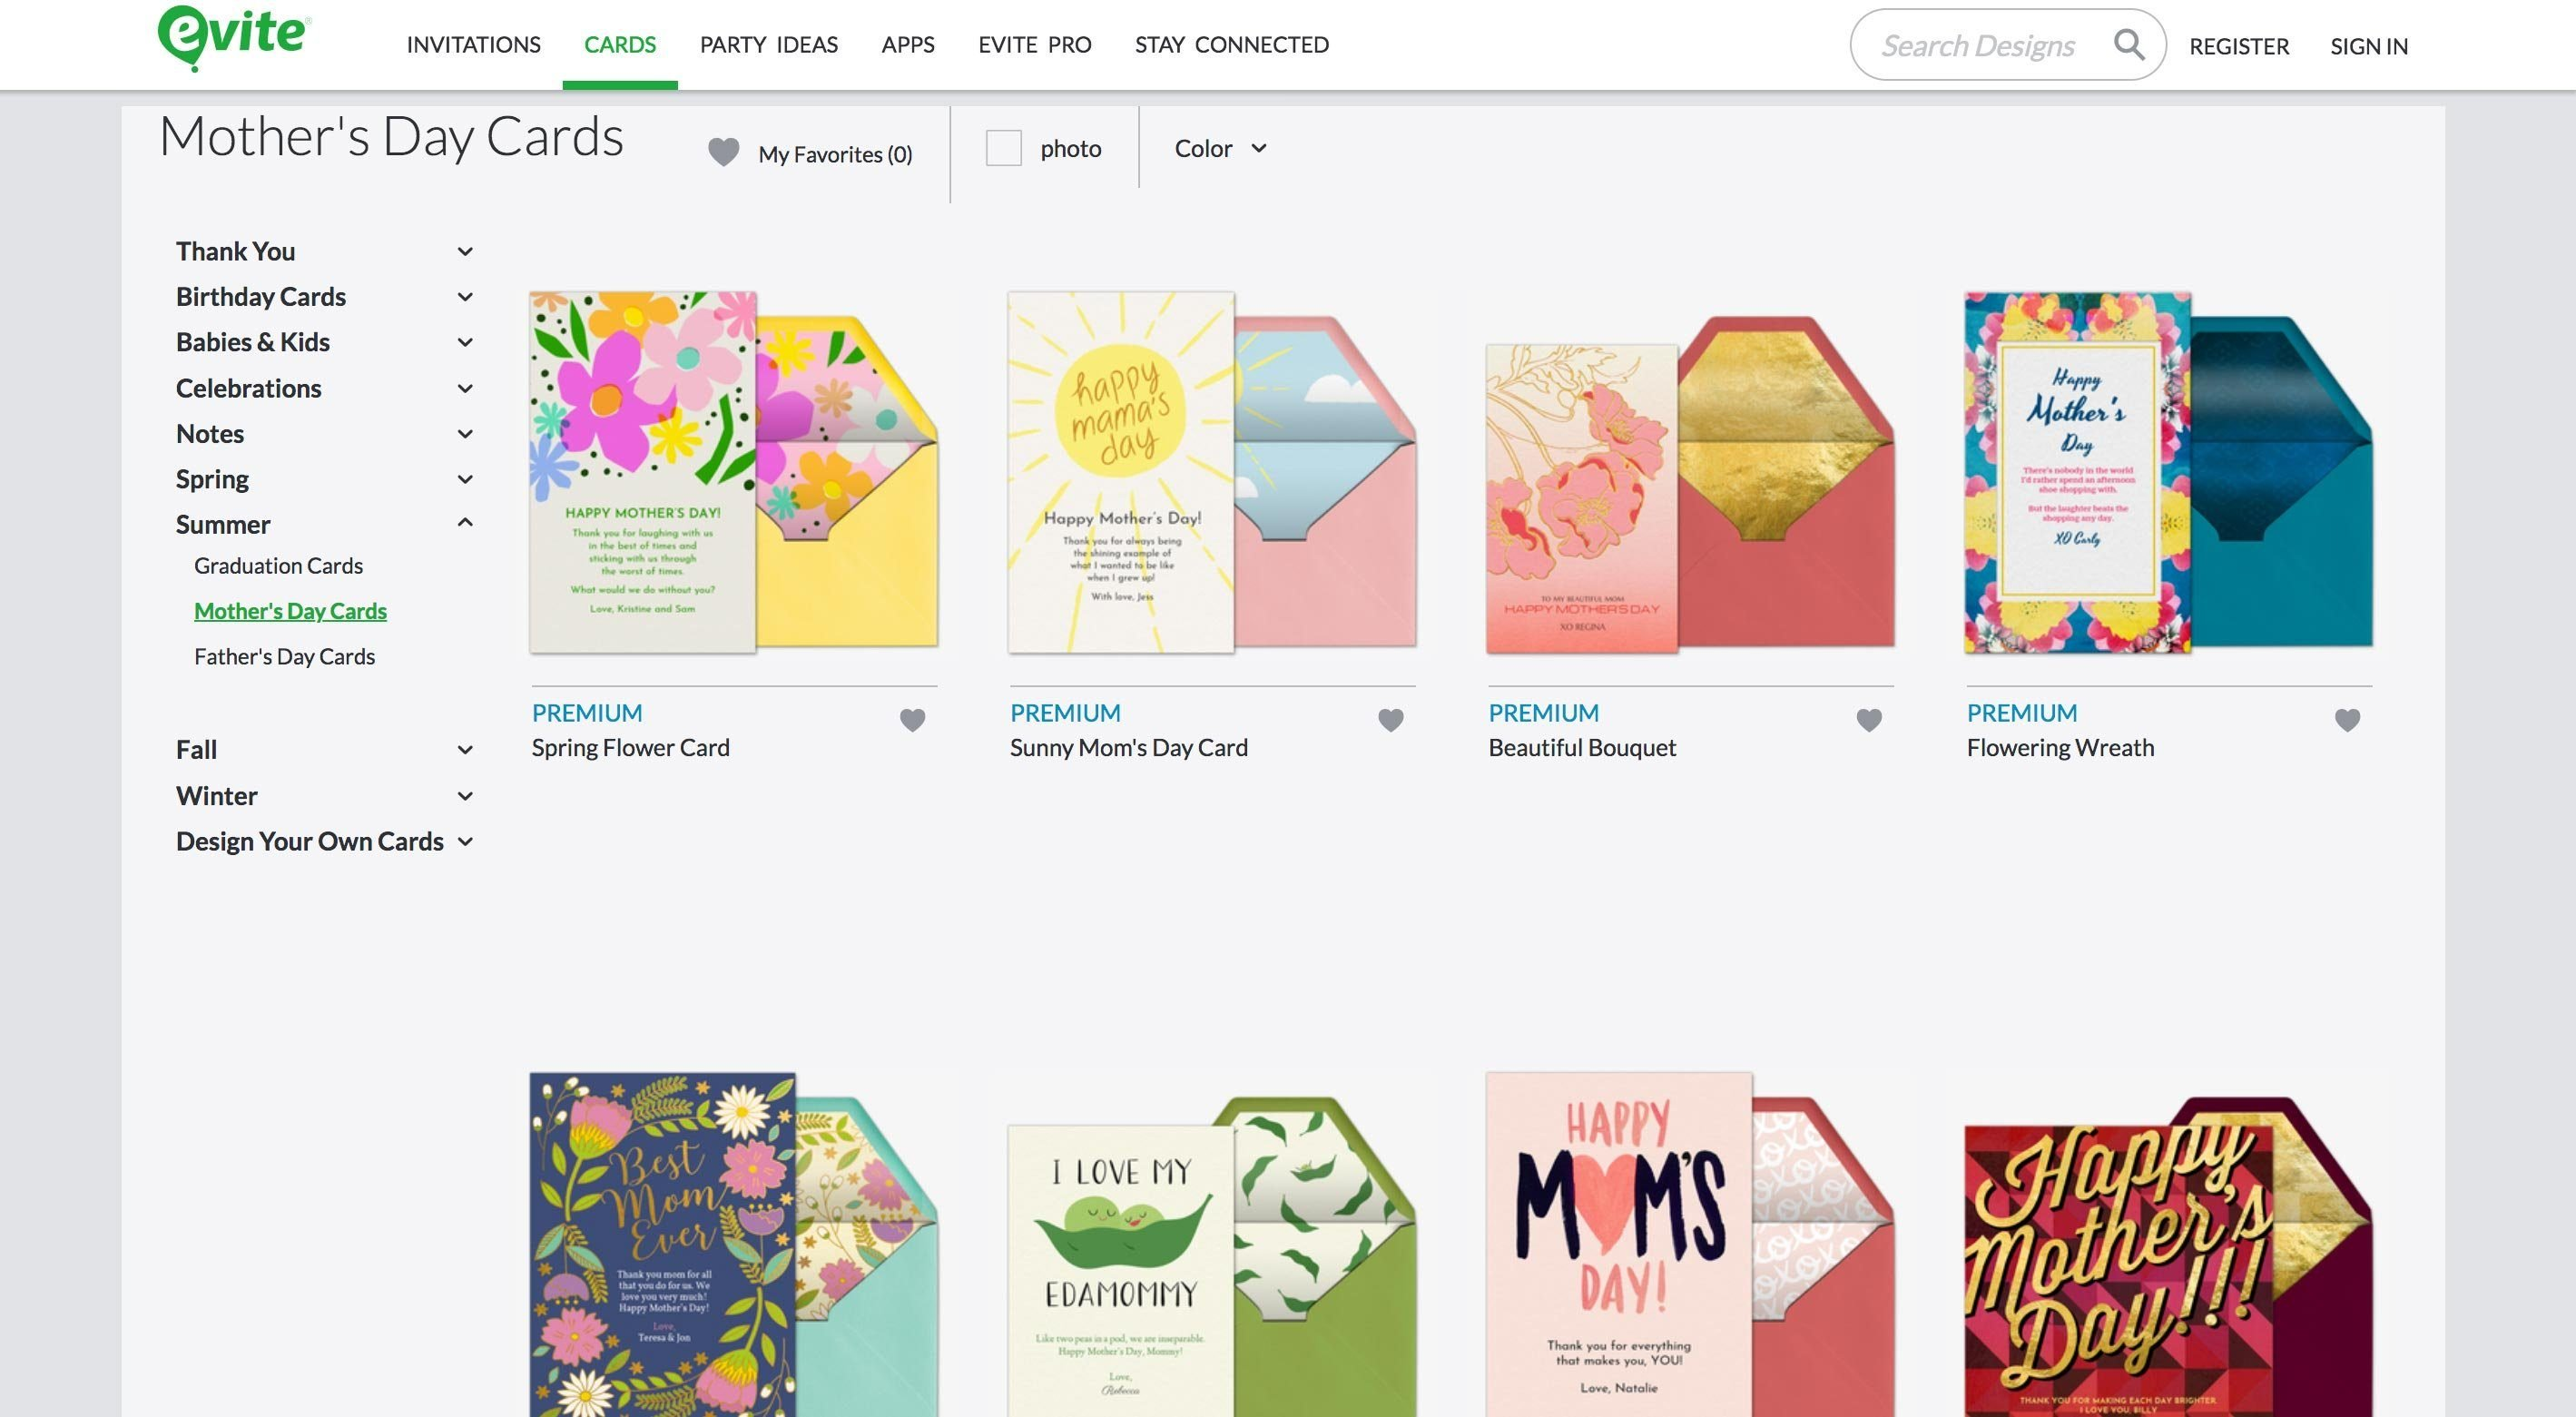 mothers day cards on evite